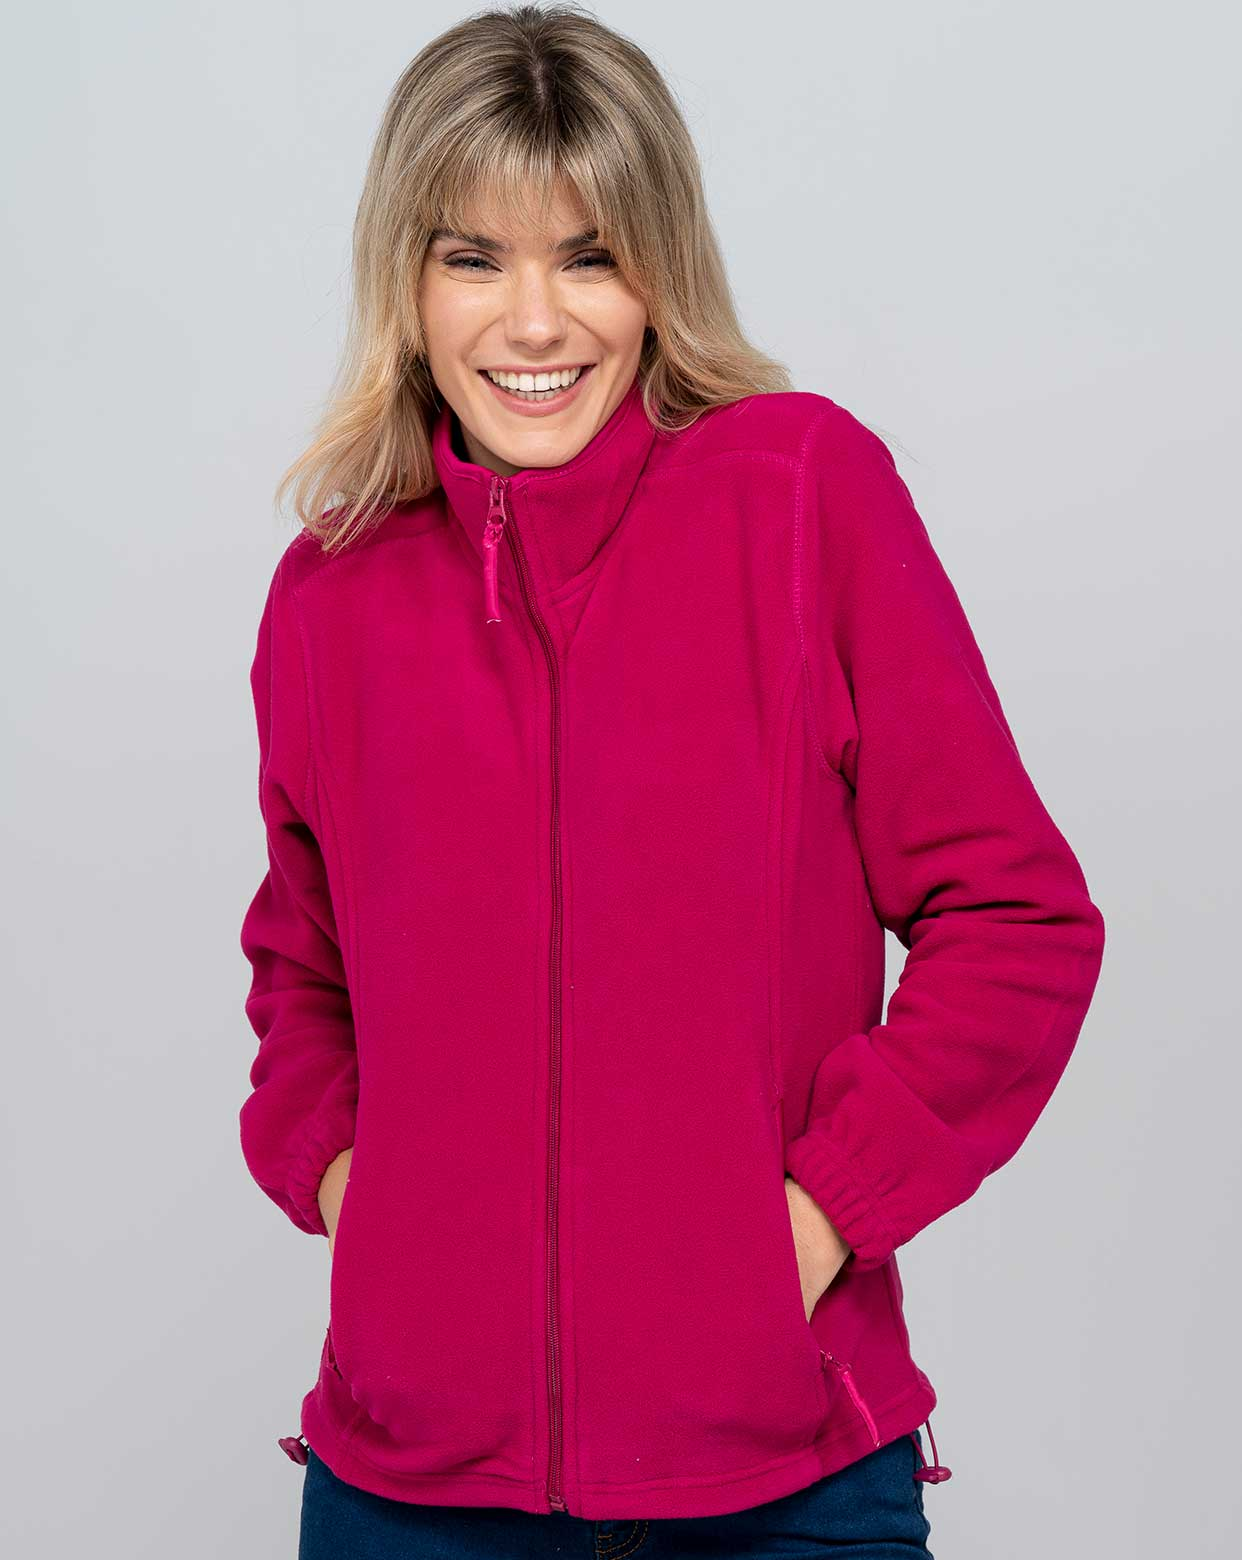 Lady Polar Fleece  - FLRL300